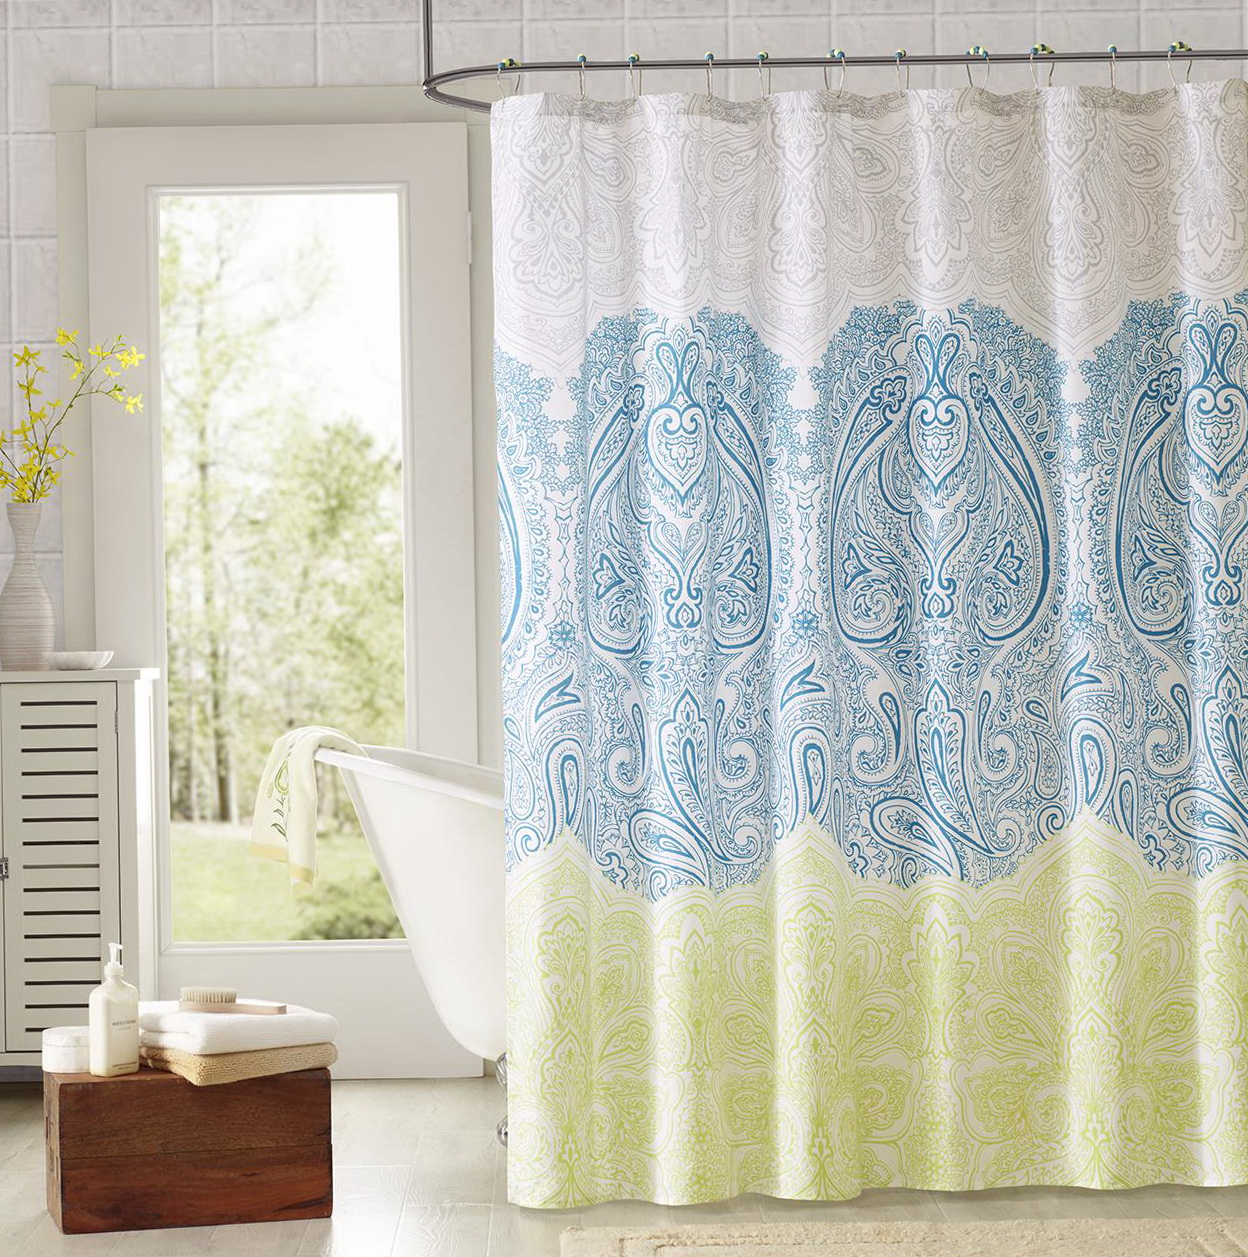 Shower Curtain With Valance Sets Home Design Ideas